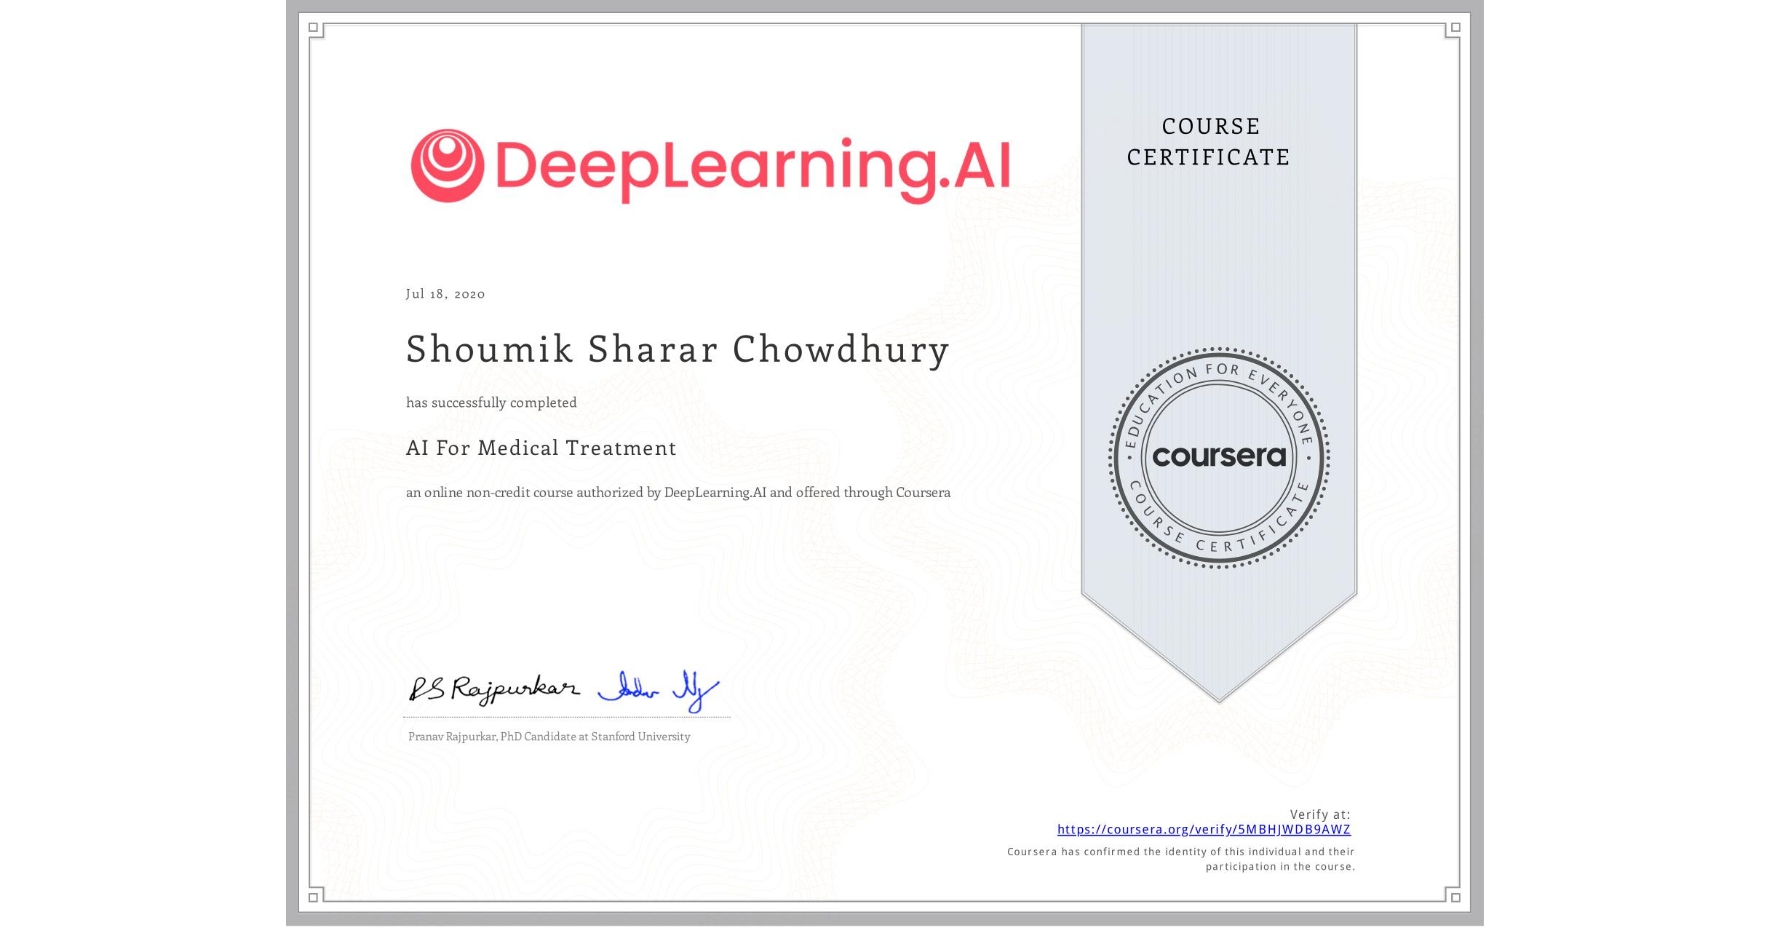 View certificate for Shoumik Sharar Chowdhury, AI For Medical Treatment, an online non-credit course authorized by DeepLearning.AI and offered through Coursera